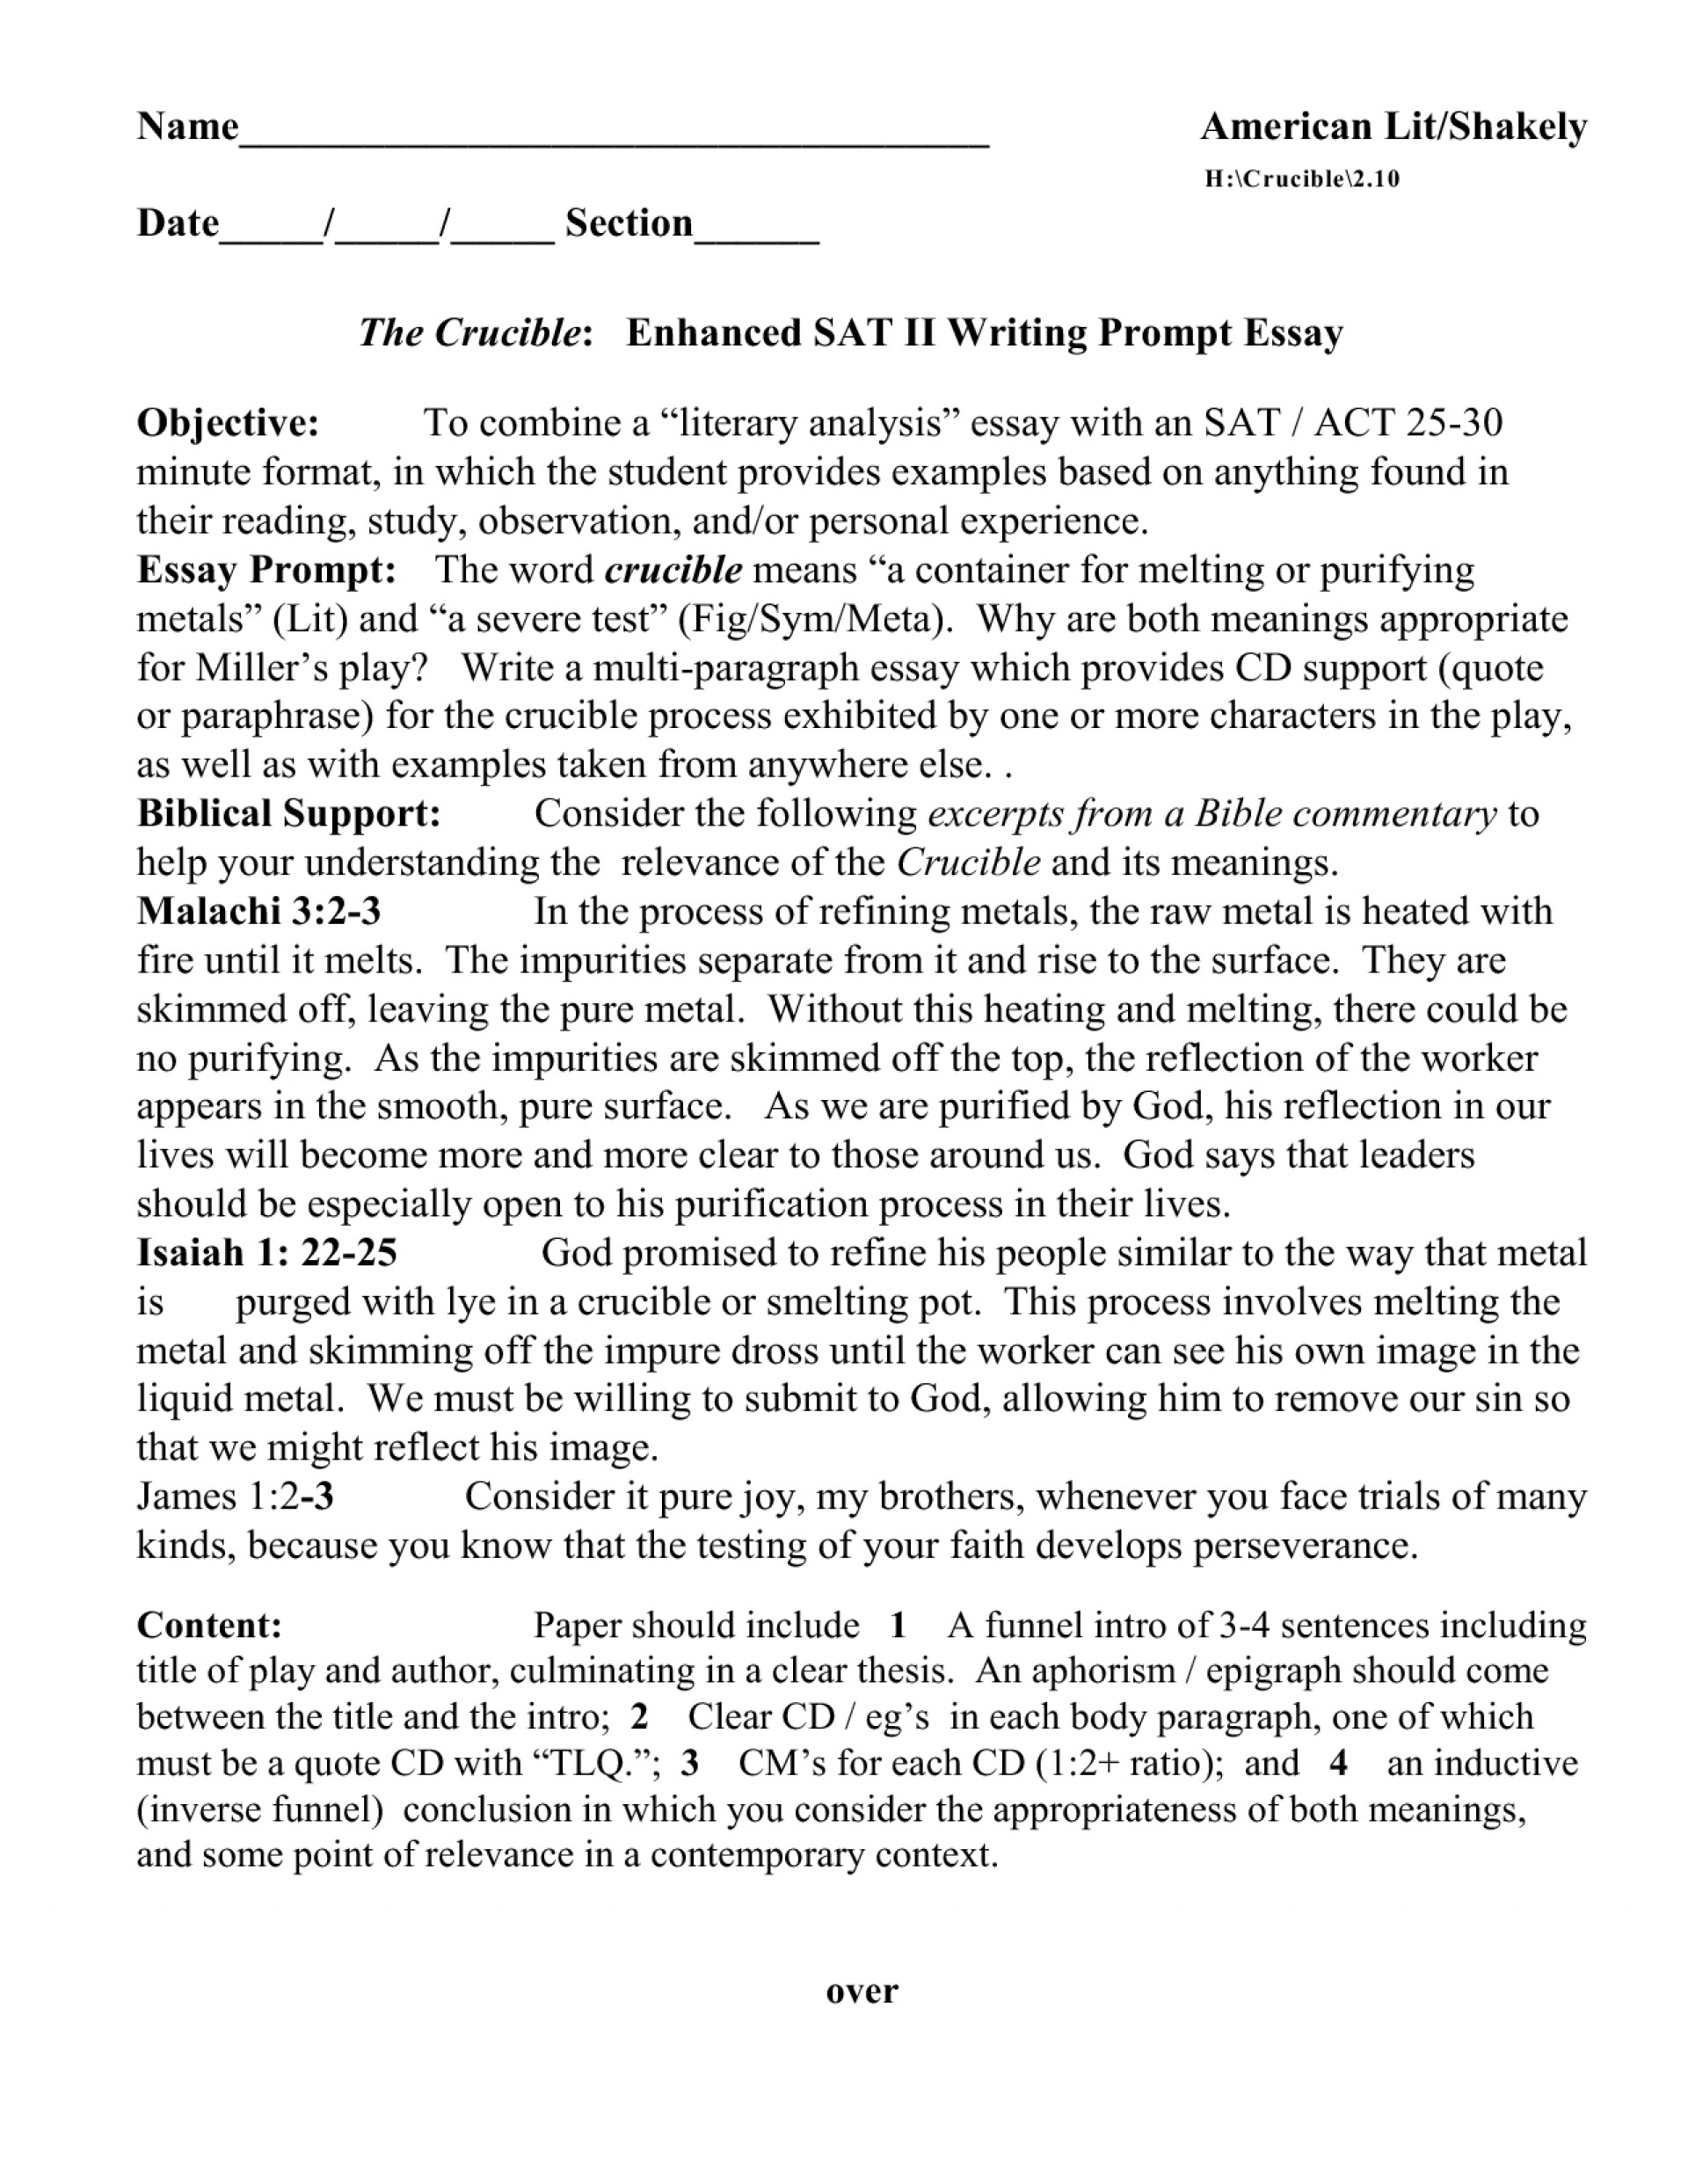 008 Sat Essay Prompts History Practice L Surprising 2015 Writing Solutions To 50 Sample Pdf Prompt June 2017 1920